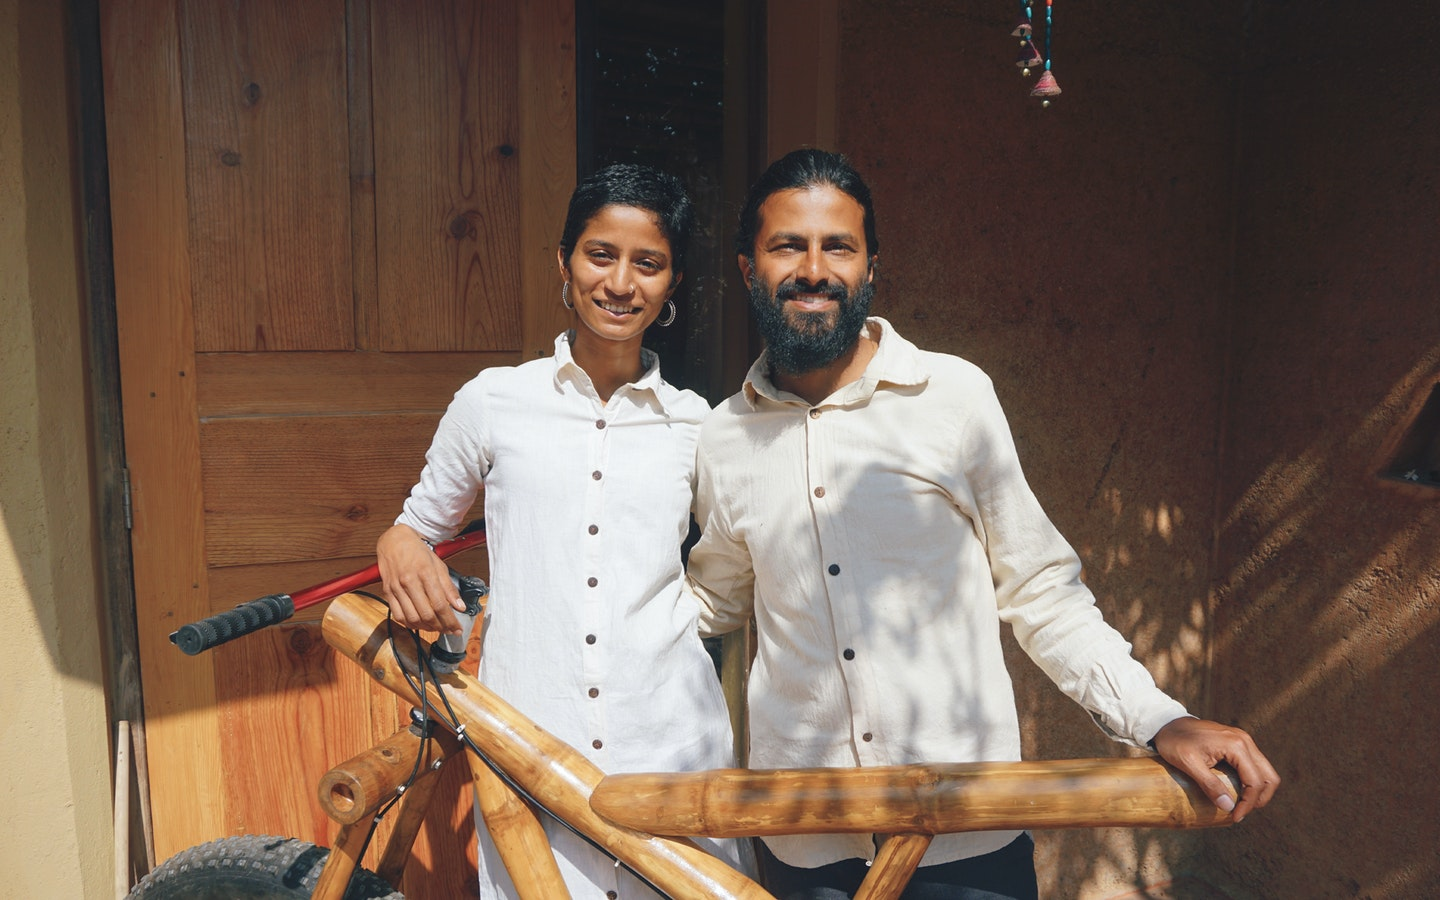 Bamboo Crafts and Earthen Construction with Nripal & Pranathi